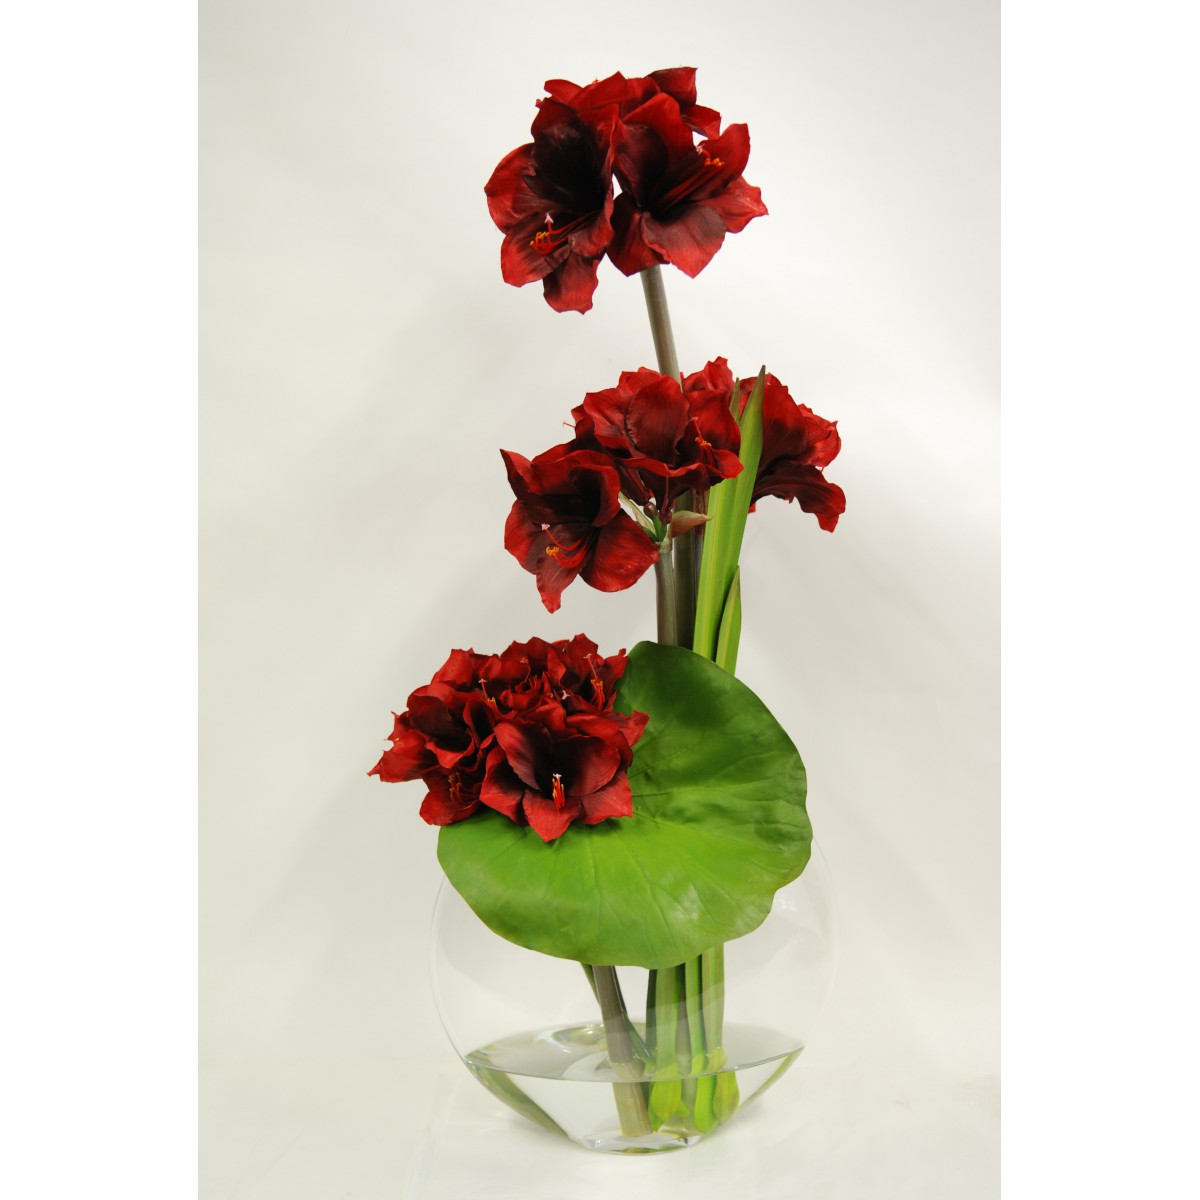 fleurs d 39 amaryllis artificiels de qualit sign es emilio robba. Black Bedroom Furniture Sets. Home Design Ideas